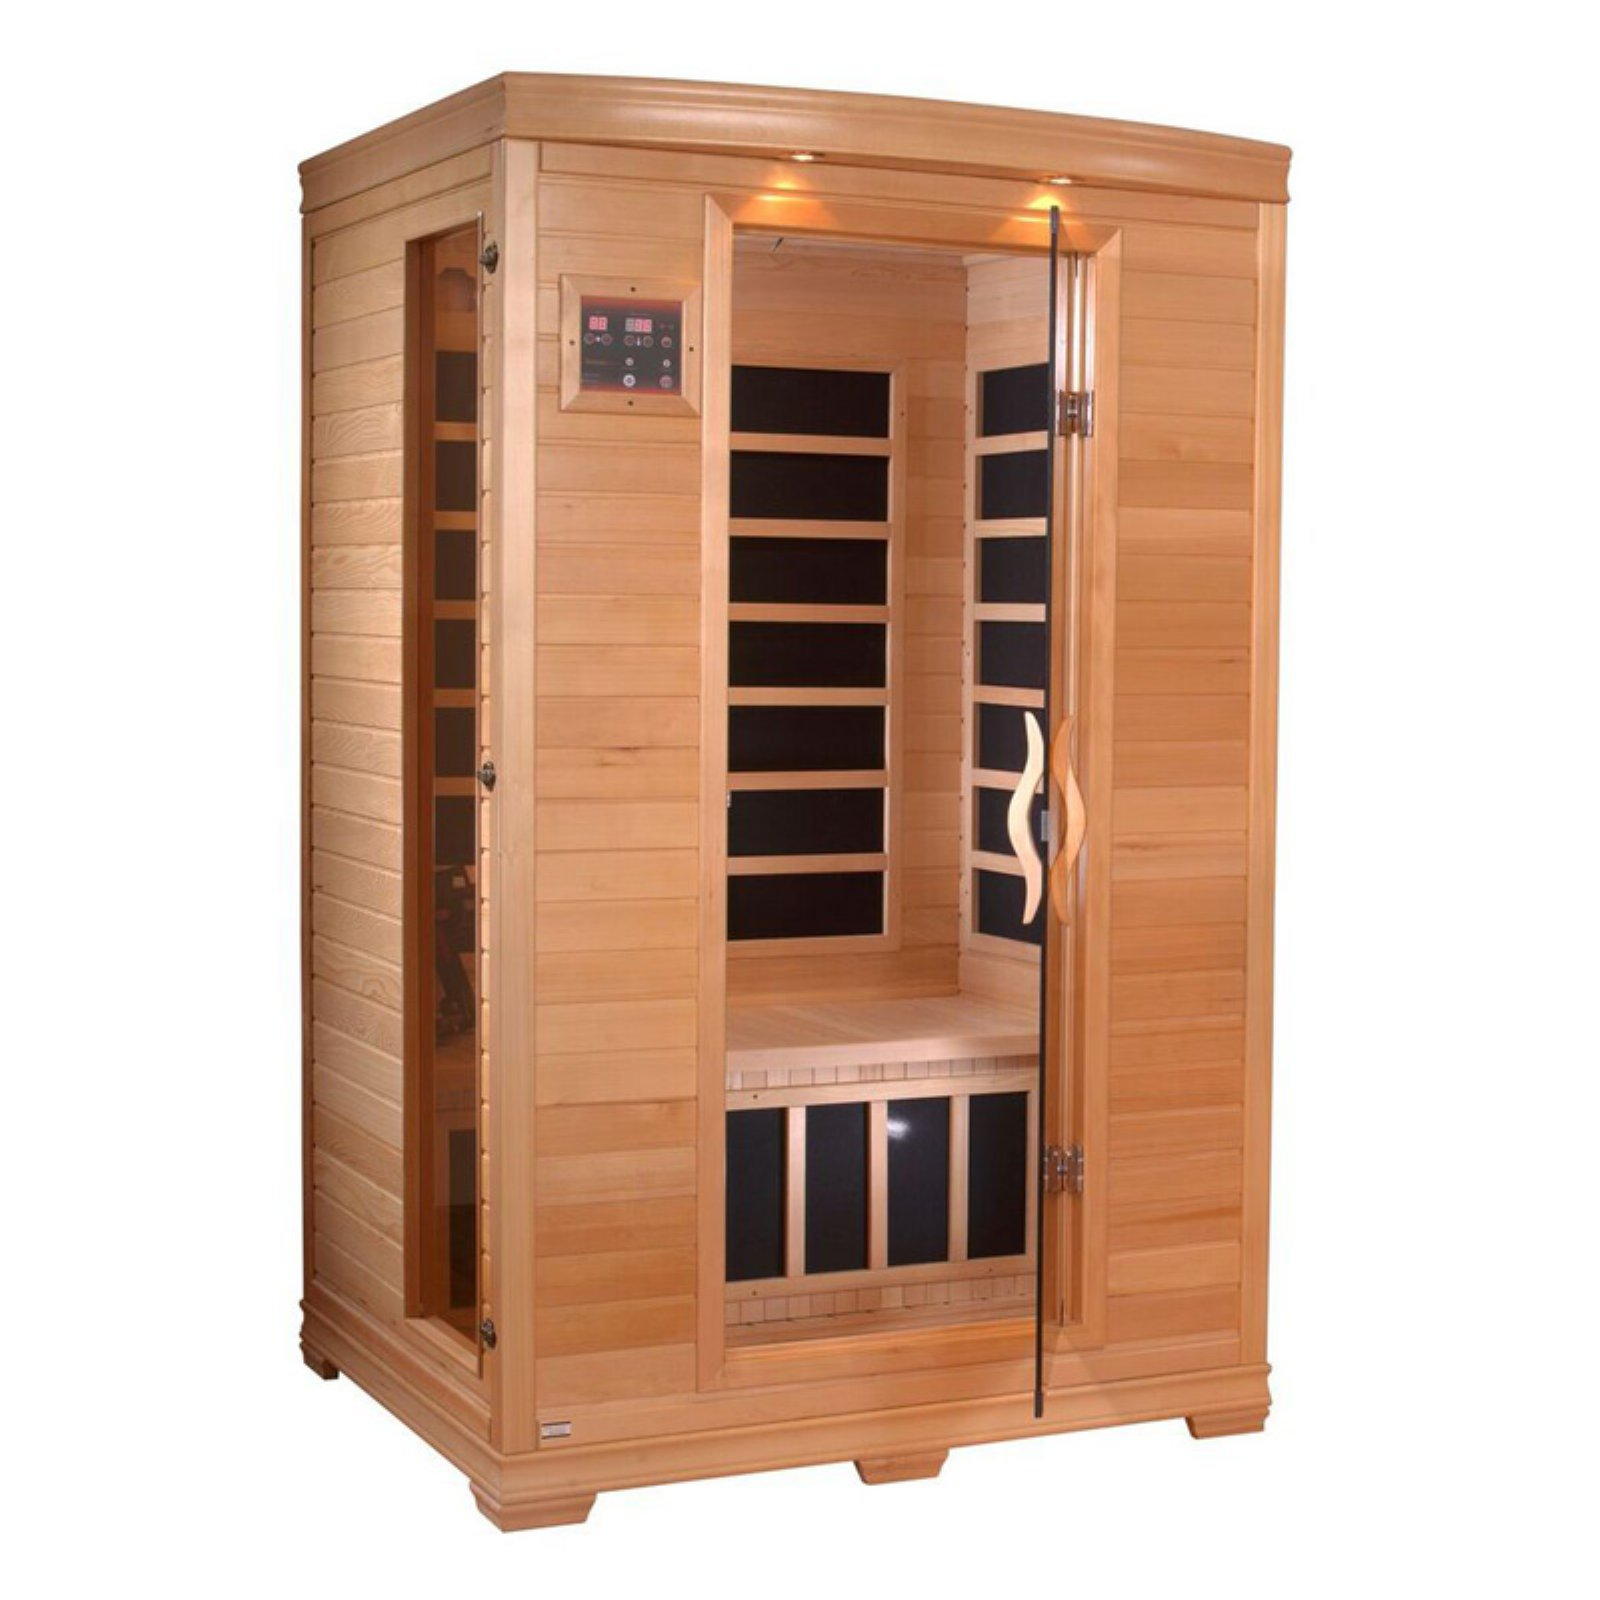 Golden Designs Inc. 2 Person Infrared Sauna by Overstock